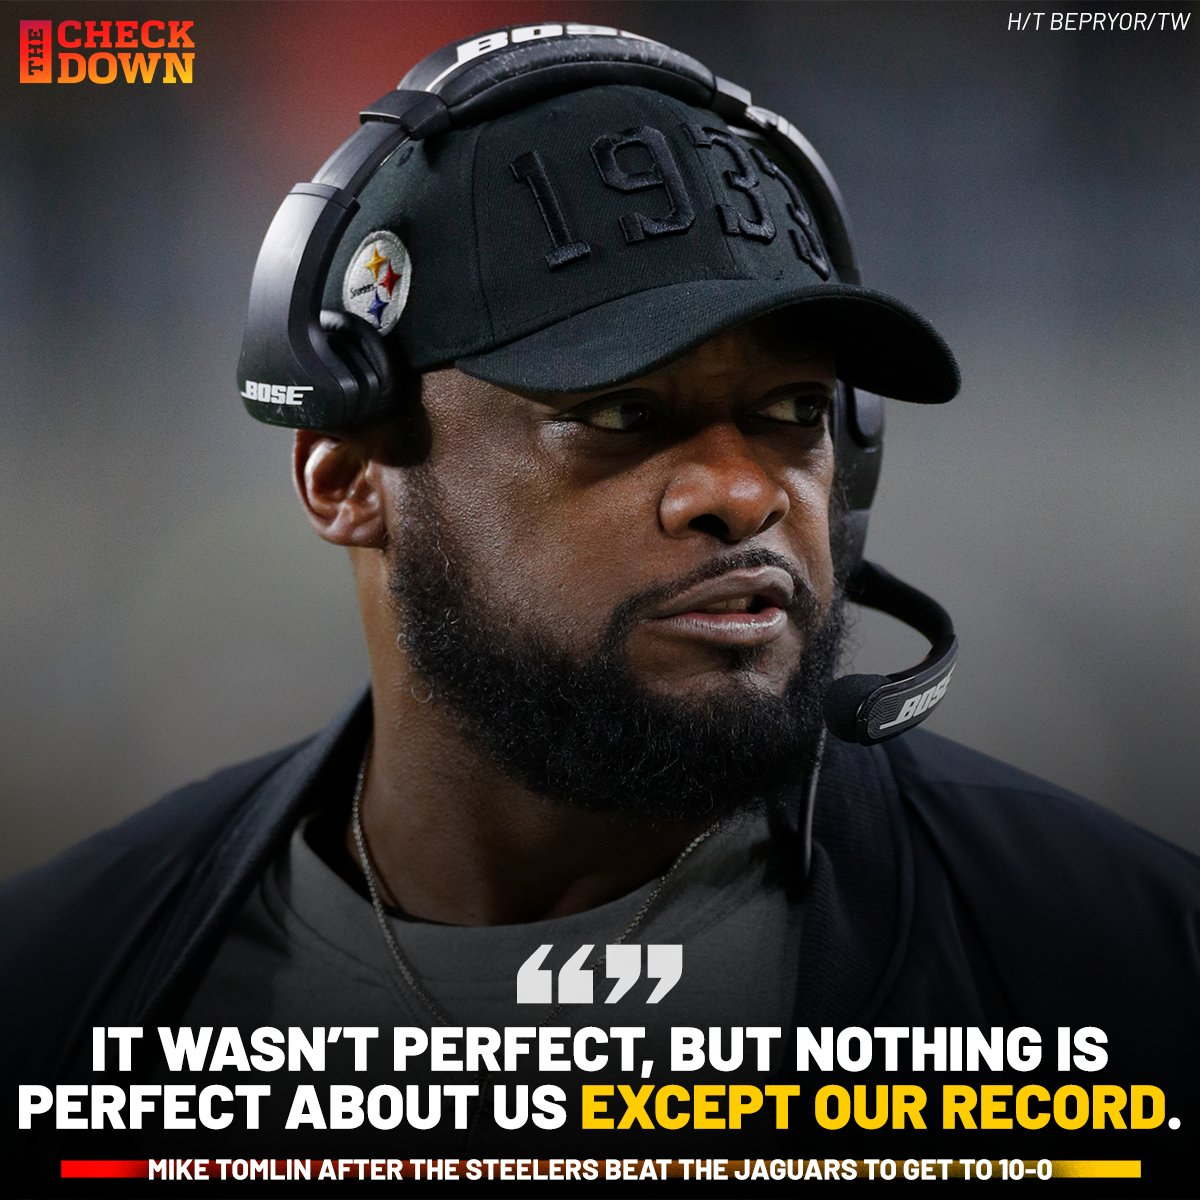 Mike Tomlin been talking that talk 🗣️ @steelers